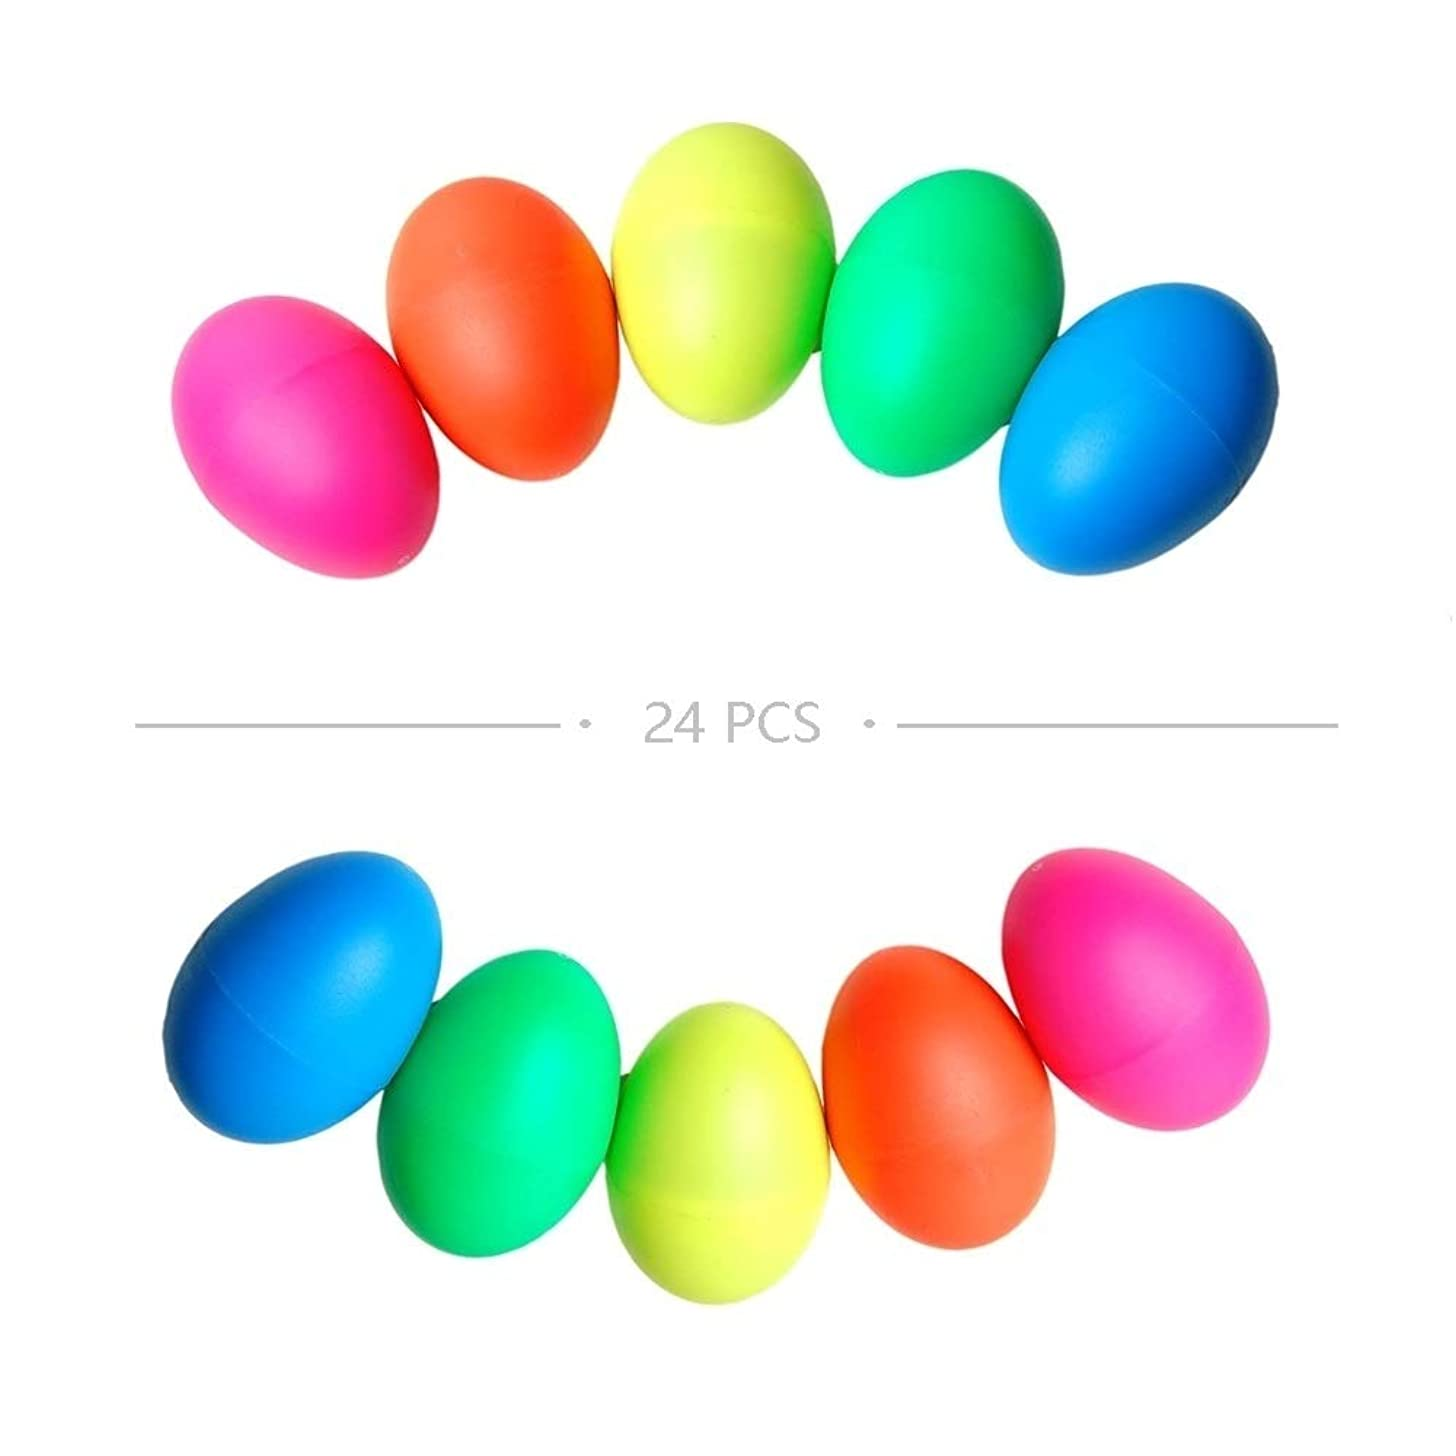 GOGO 24 Pcs Plastic Egg Shakers, Percussion Musical Egg Maracas Easter Egg Kids Toys with Mixed Colors for Child Toys Music Learning DIY Painting